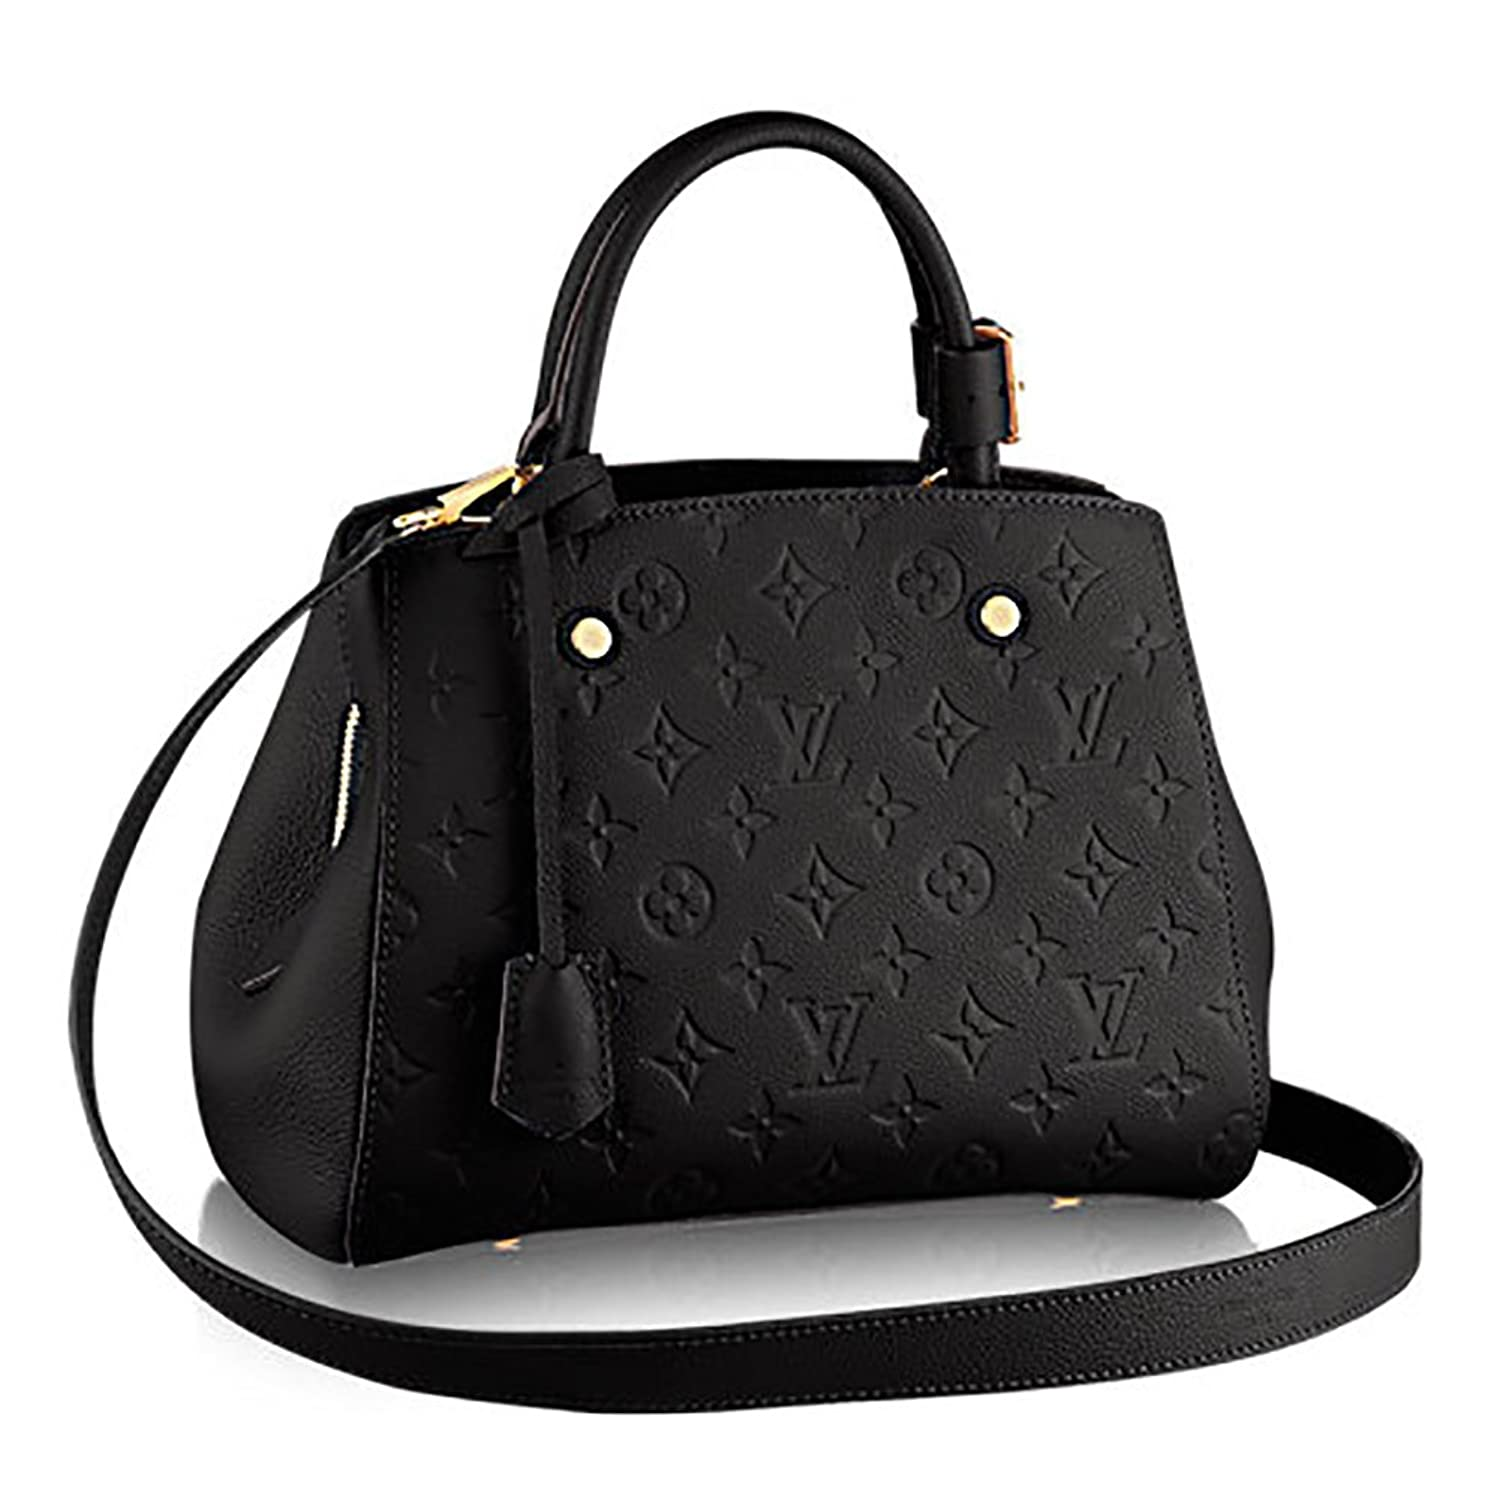 Louis Vuitton レディース